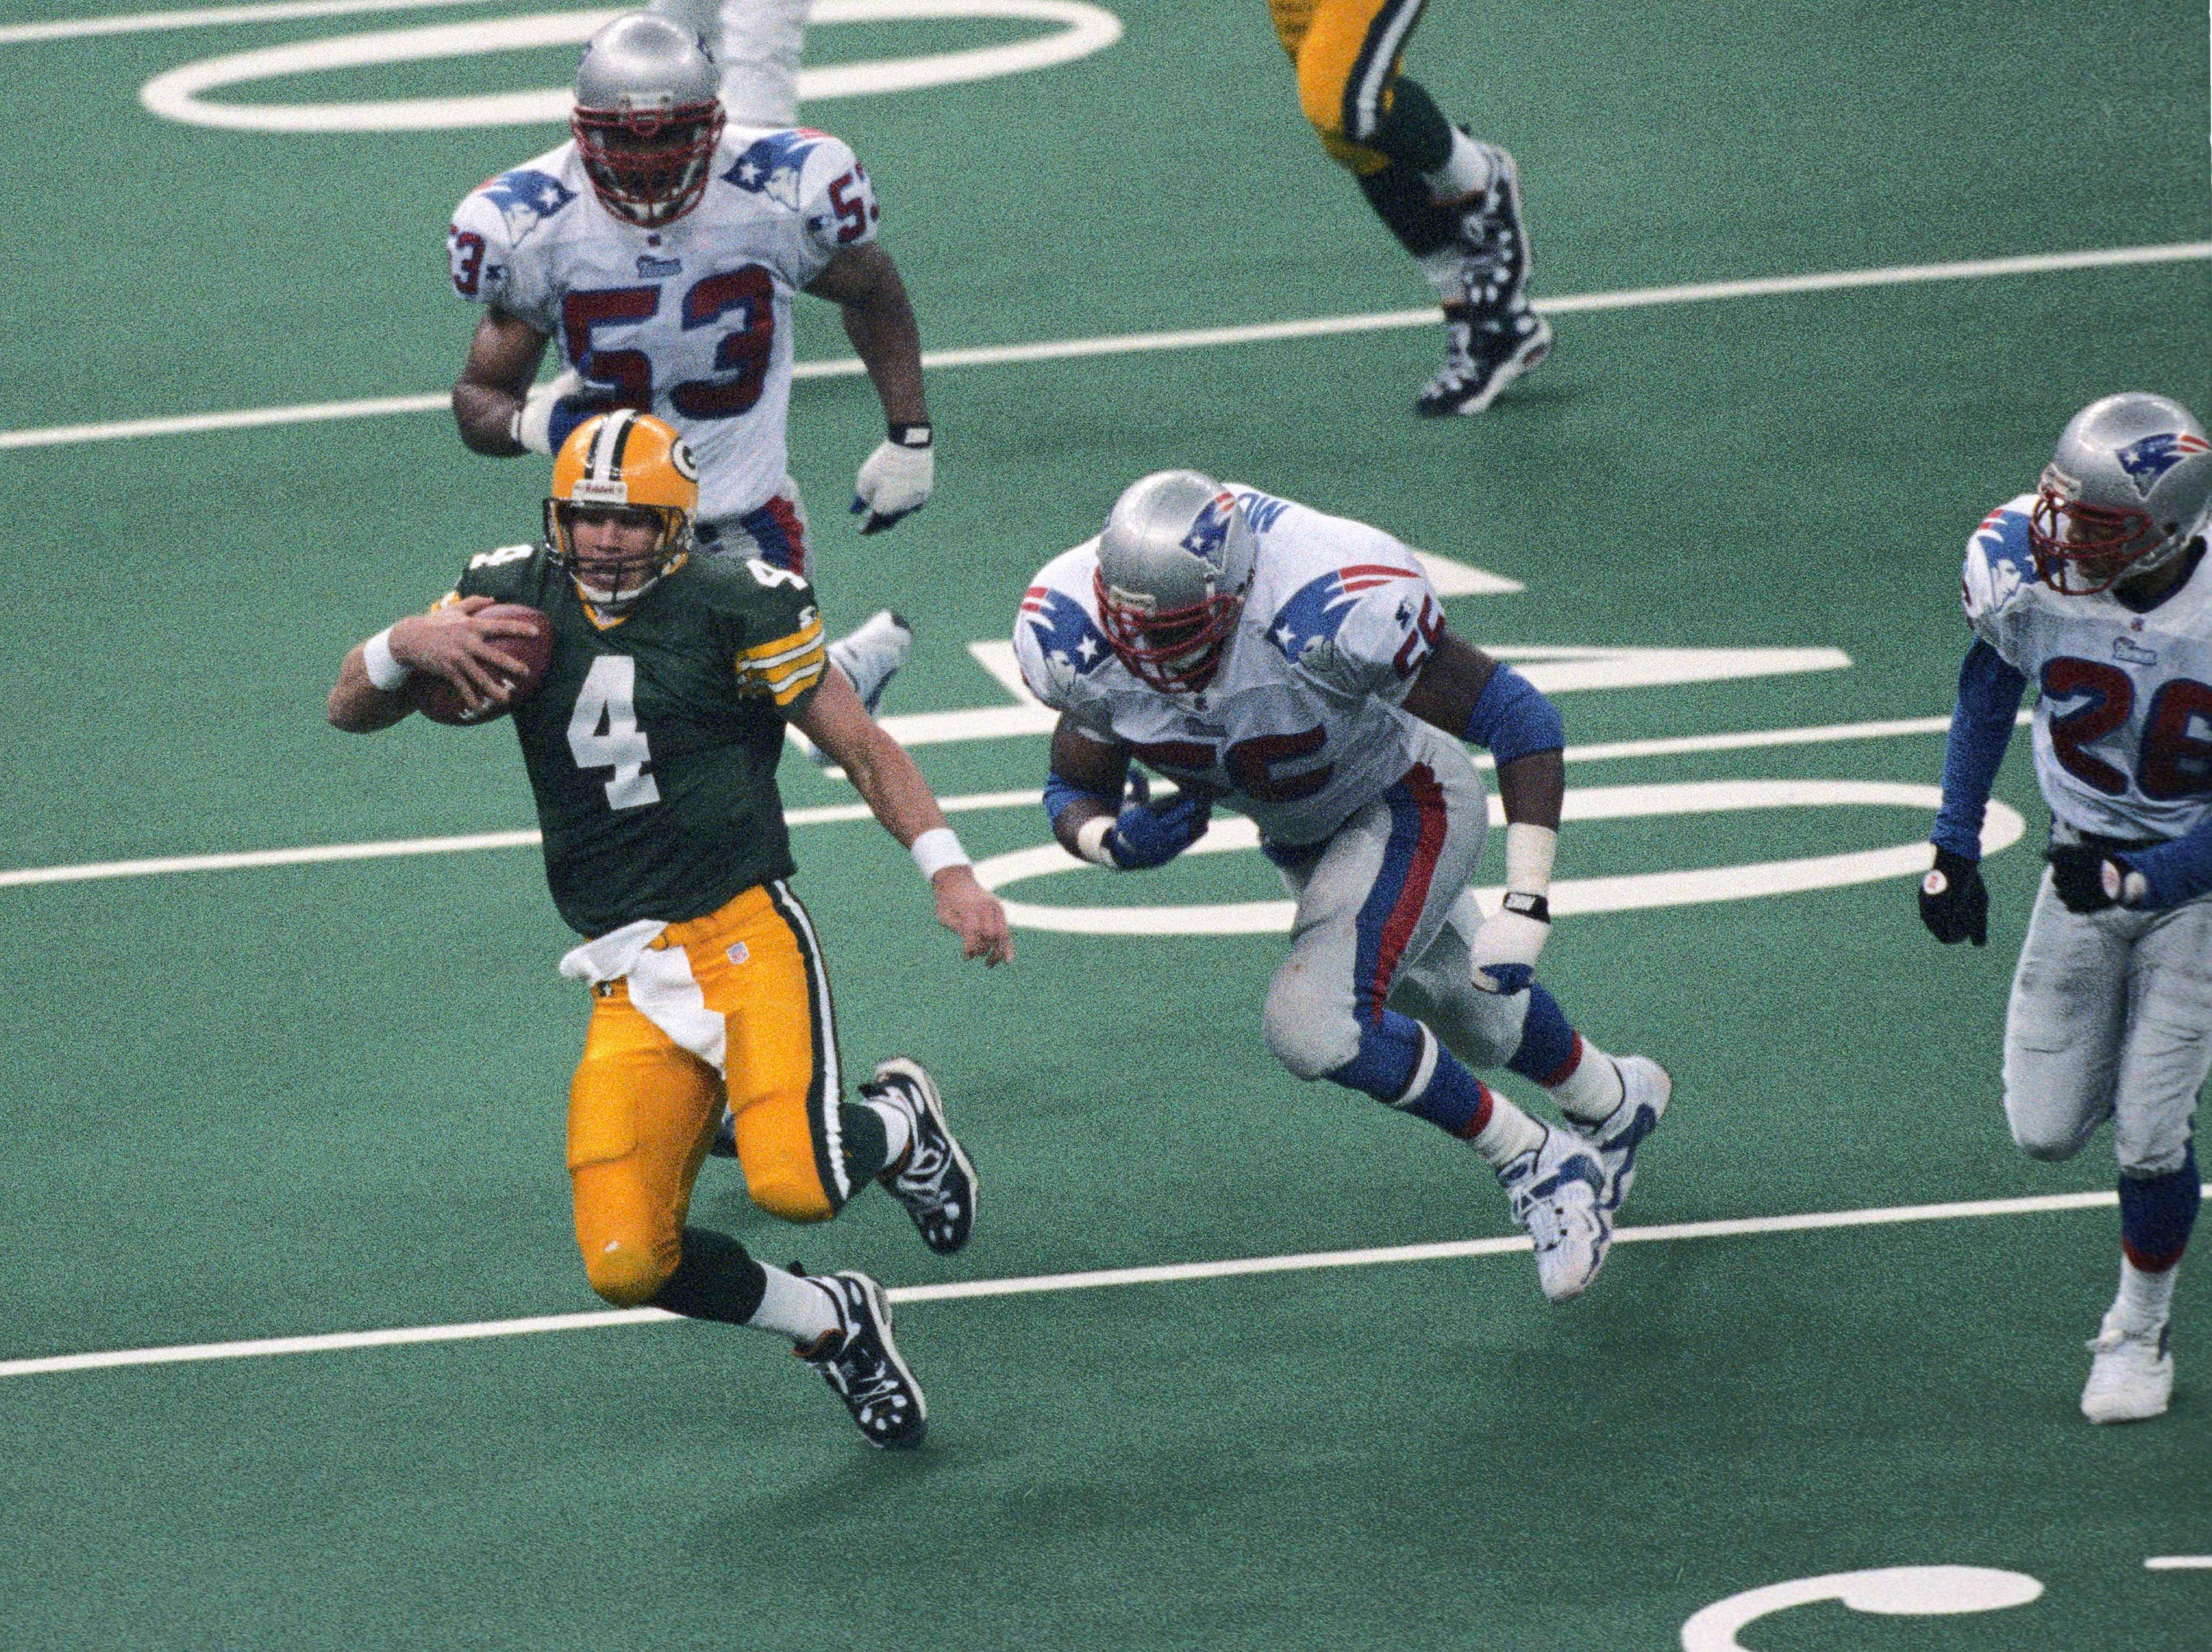 In 1996, the Green Bay Packers were led by Hall of Fame QB Brett Favre to their first championship win in almost 30 years. The team had the best offense, defense and special teams in the league that year. They defeated the New England Patriots in Super Bowl XXXI 35-21. The NFC had won the championship 12 years in a row by this point but a new era was about to start. (pictured: Jan 26, 1997; New Orleans, LA, USA; Green Bay Packers quarterback Brett Favre (4) in action against New England Patriots defensive end Willie McGinest (55) and linebacker Chris Slade (53) during Super Bowl XXXI at the Superdome.)